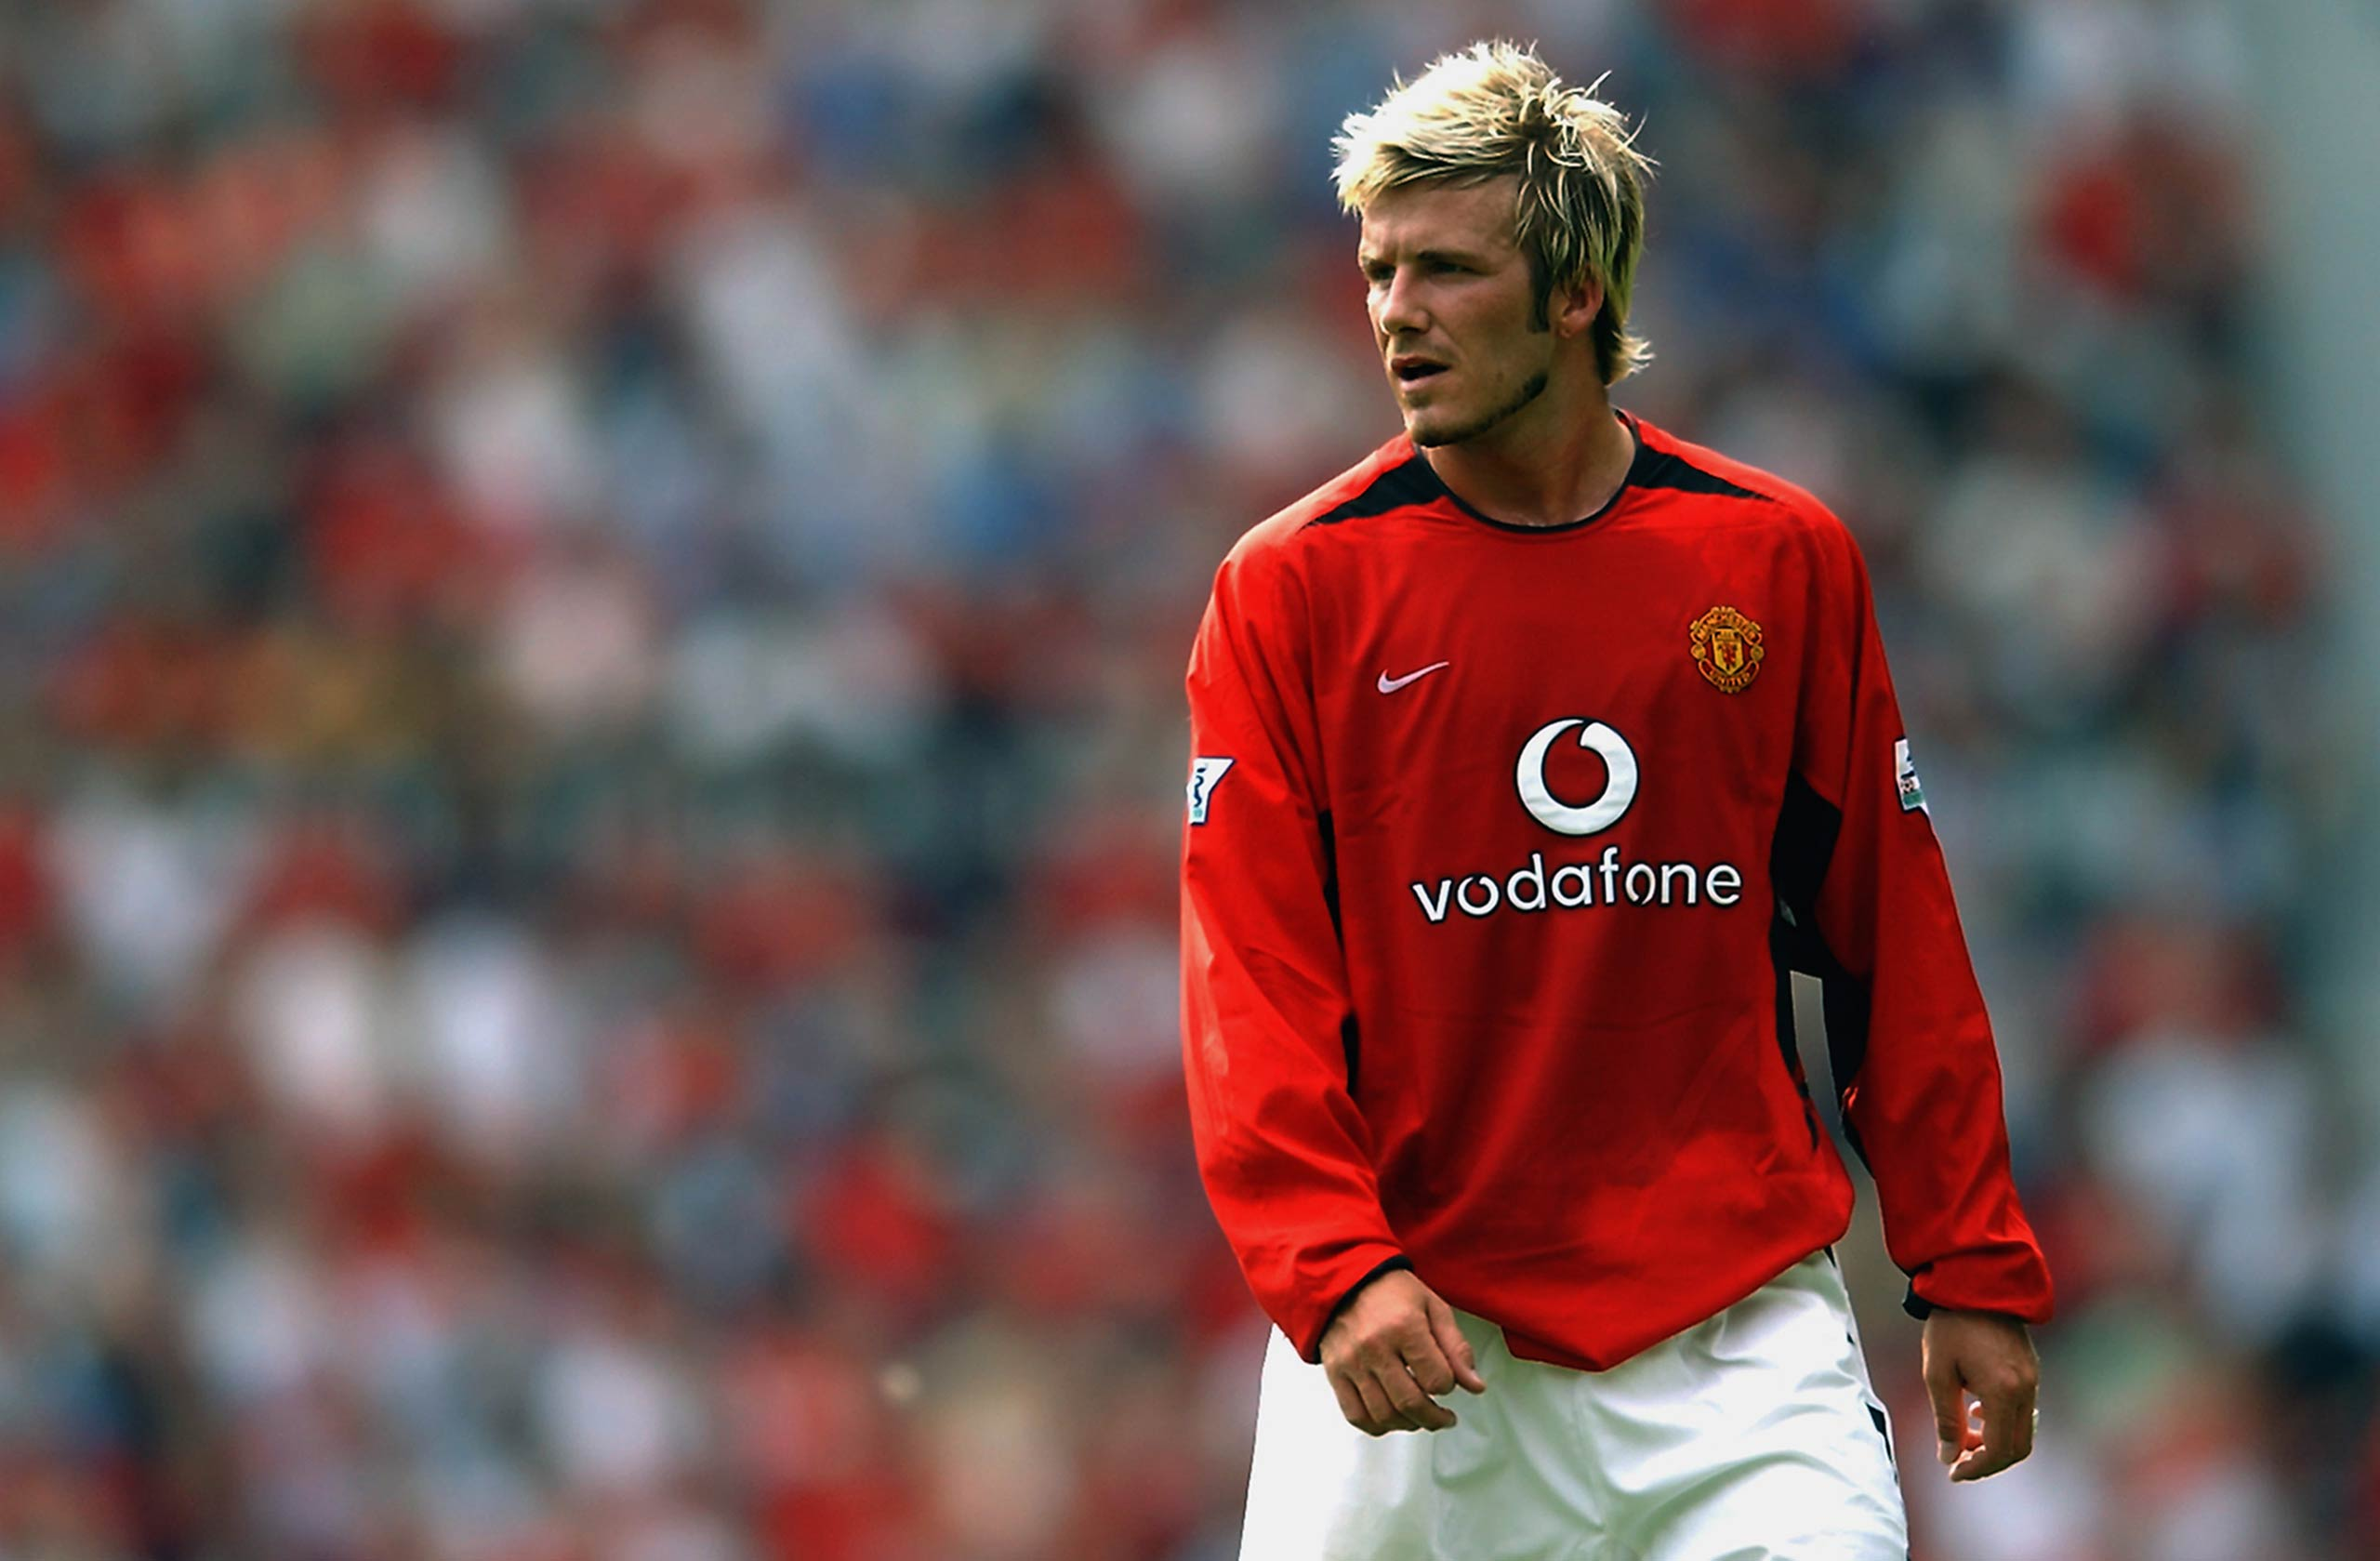 David Beckham of Manchester United plays during the Manchester United v West Bromwich Albion FA Barclaycard Premiership match at Old Trafford in Manchester, England in 2002.